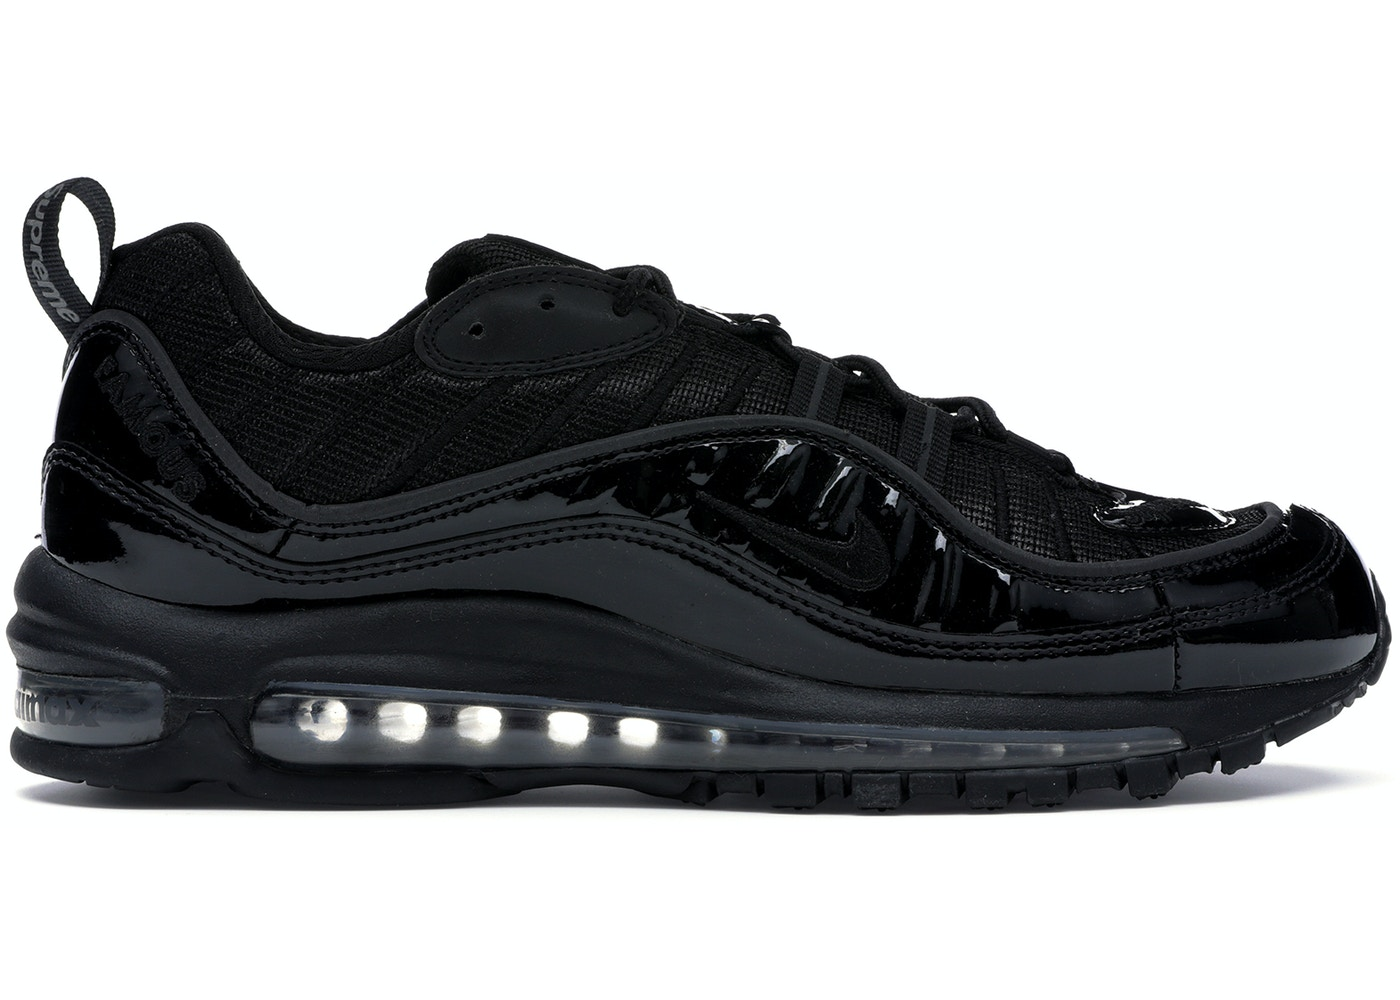 uk availability c8330 8b2f3 Air Max 98 Supreme Black